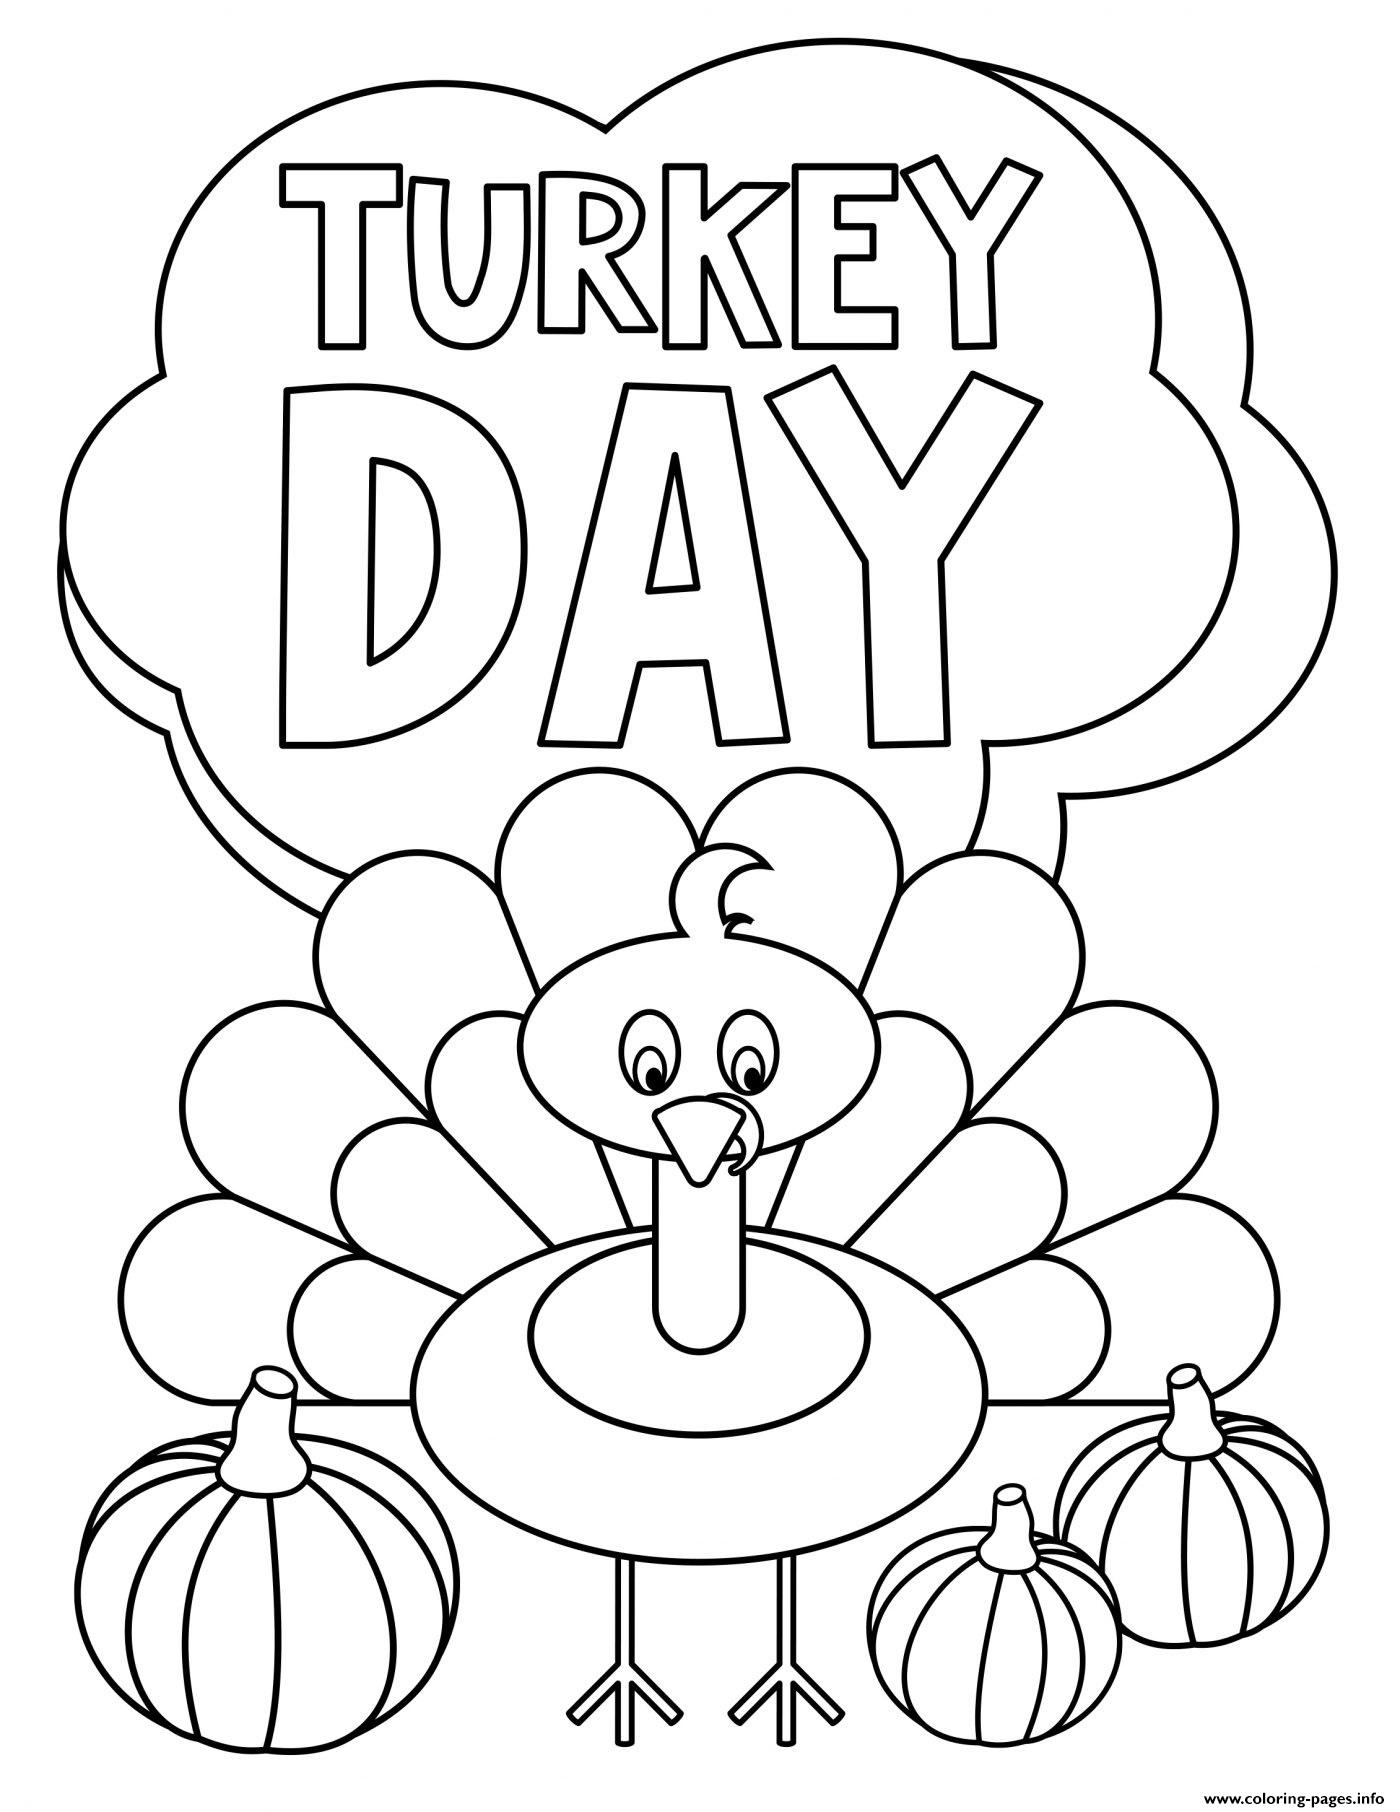 Thanksgiving Turkey Day Coloring Pages Printable